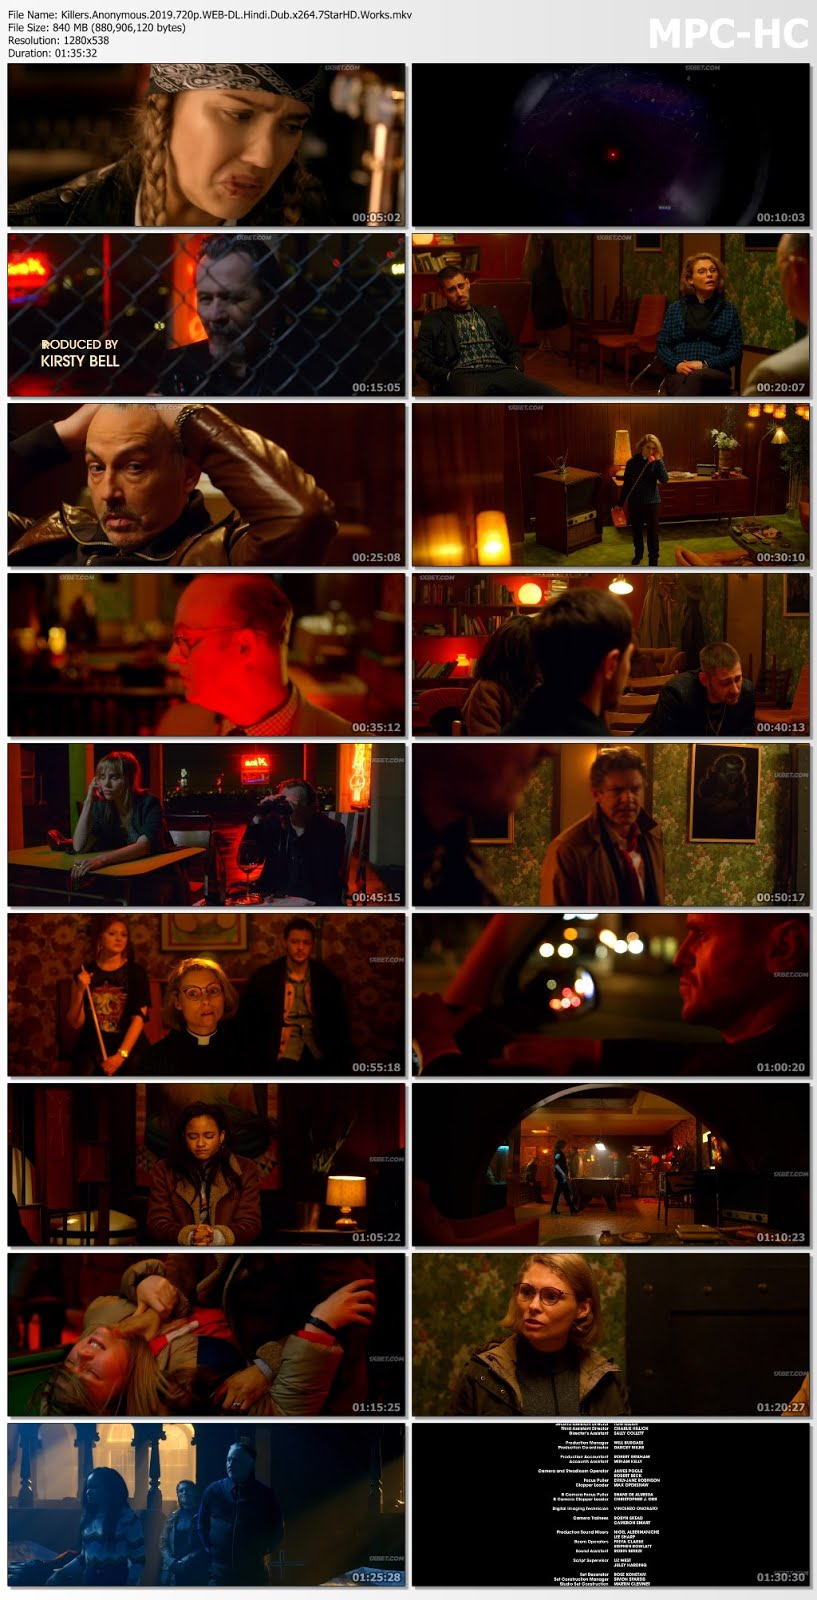 Killers.Anonymous.2019.720p.WEB